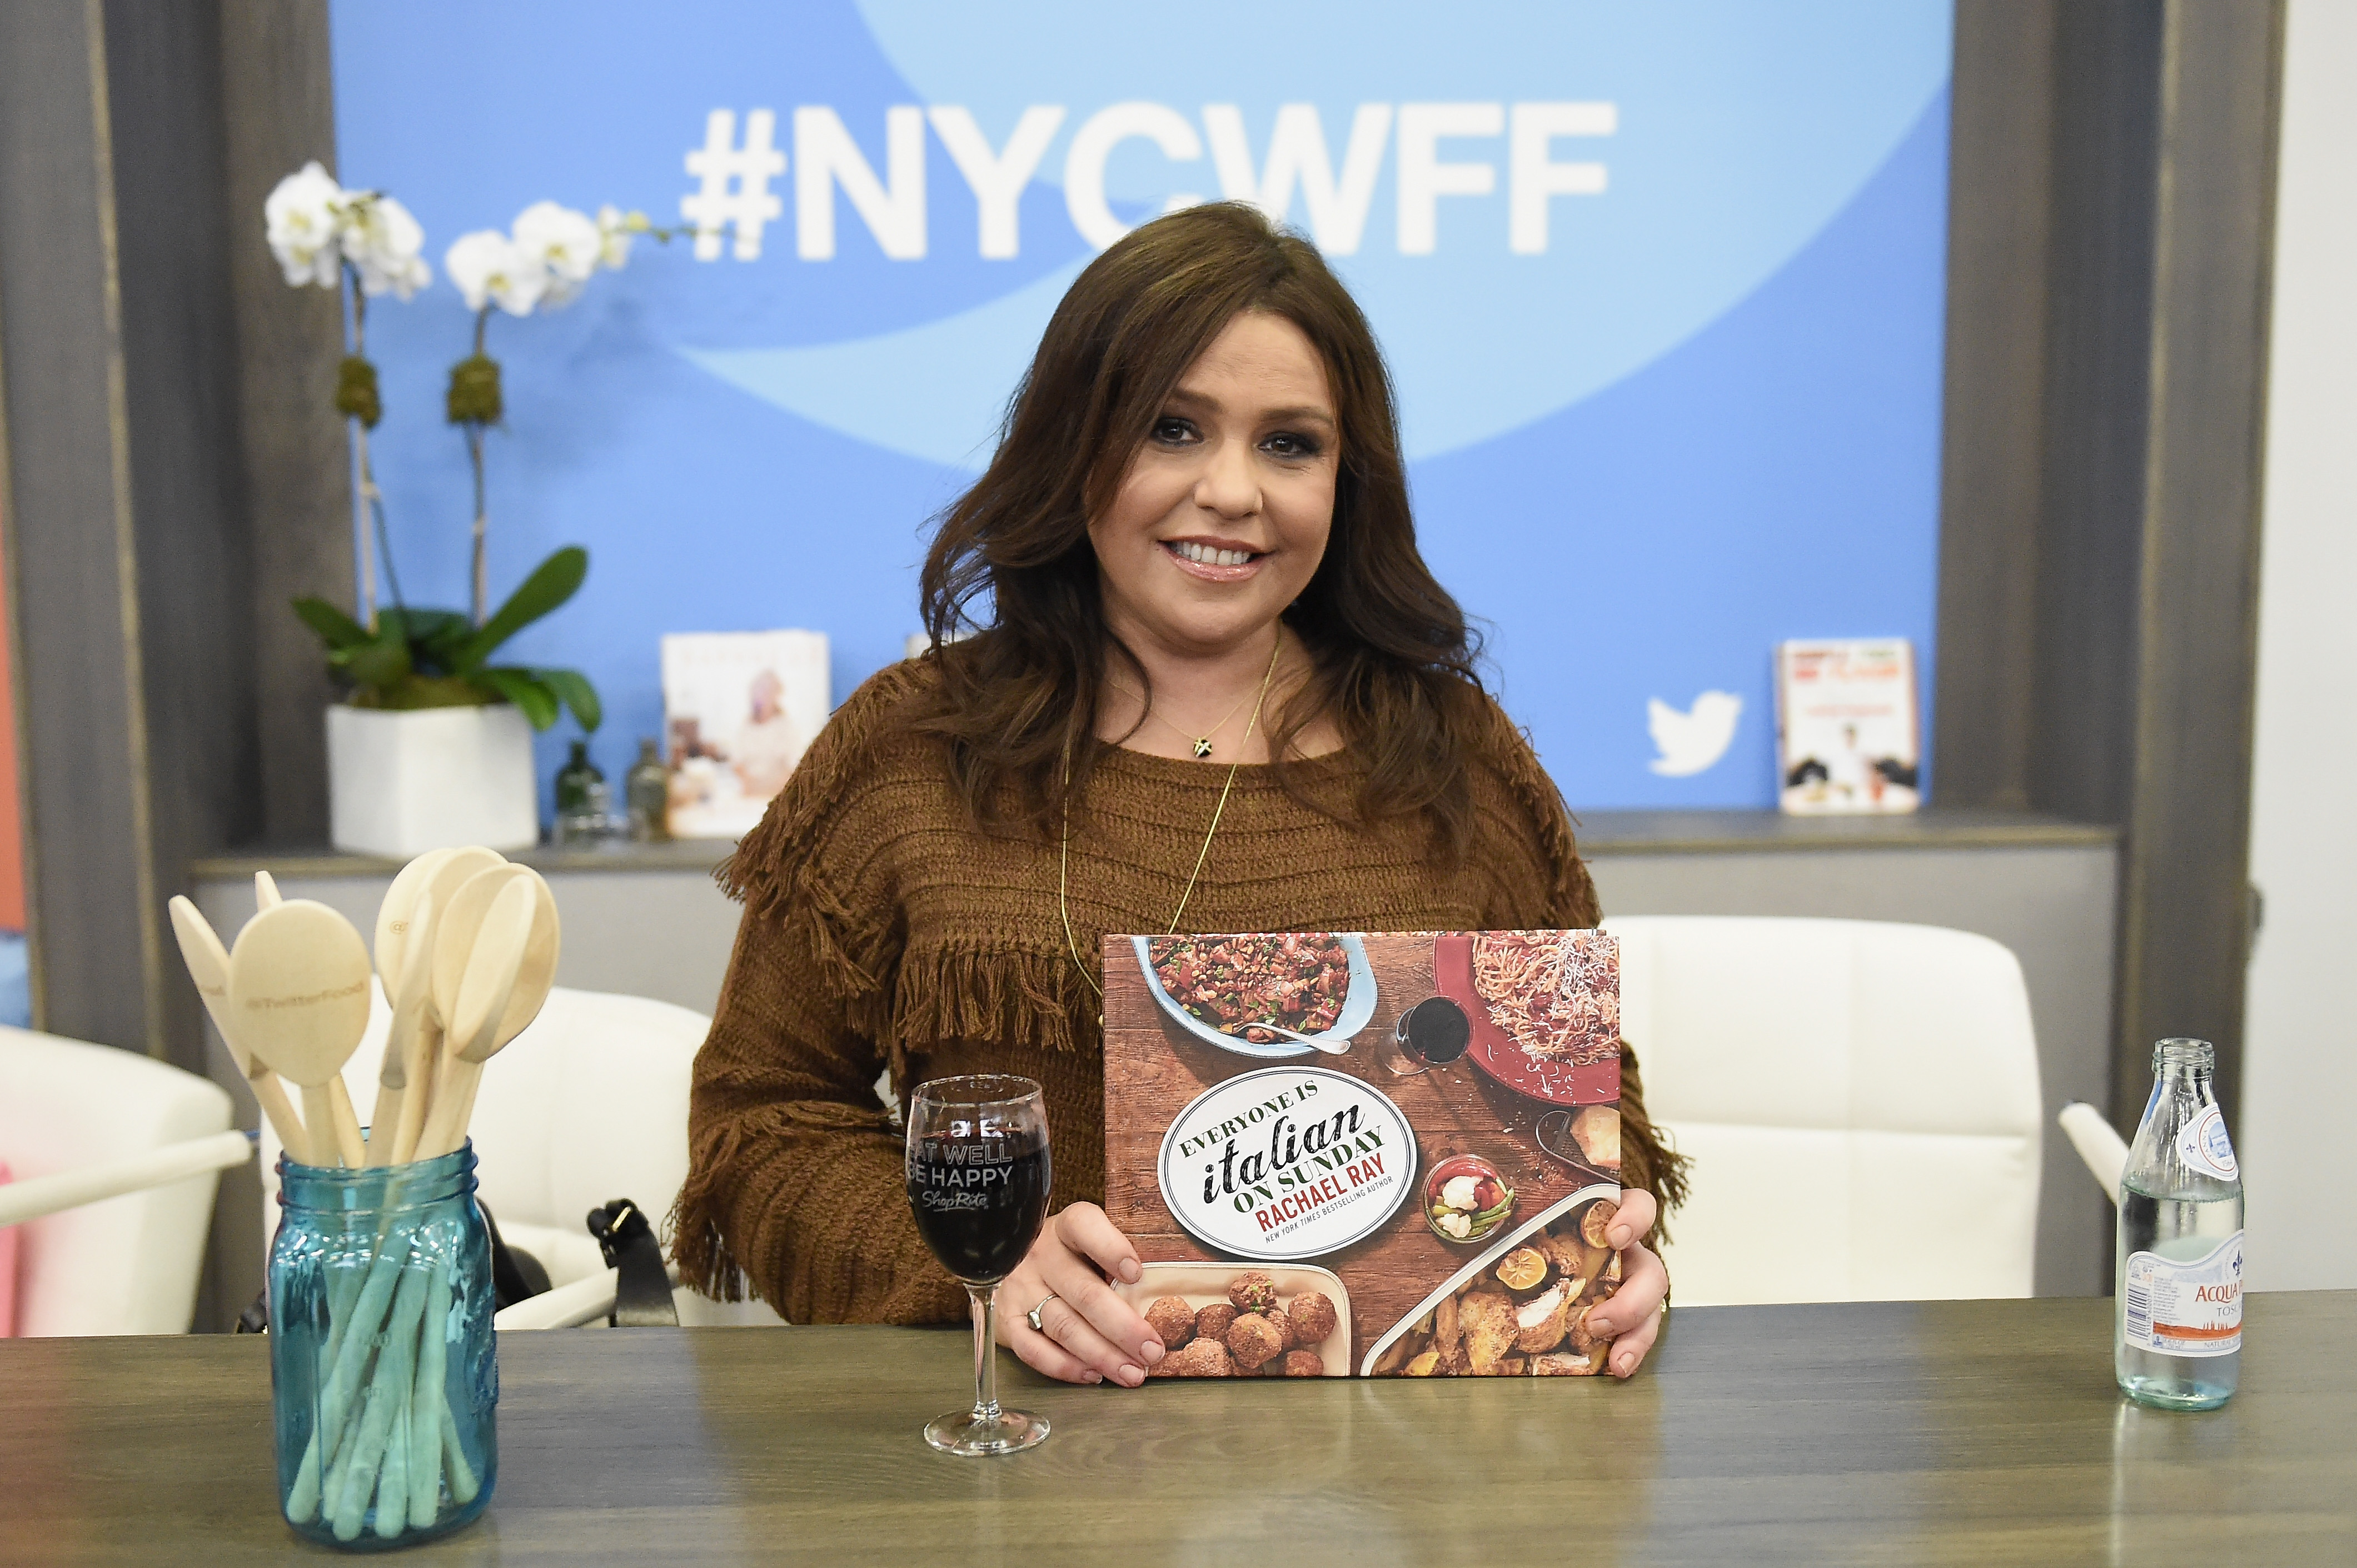 Chef Rachael Ray attends the Food Network & Cooking Channel New York City Wine & Food Festival on October 15, 2016 in New York City.